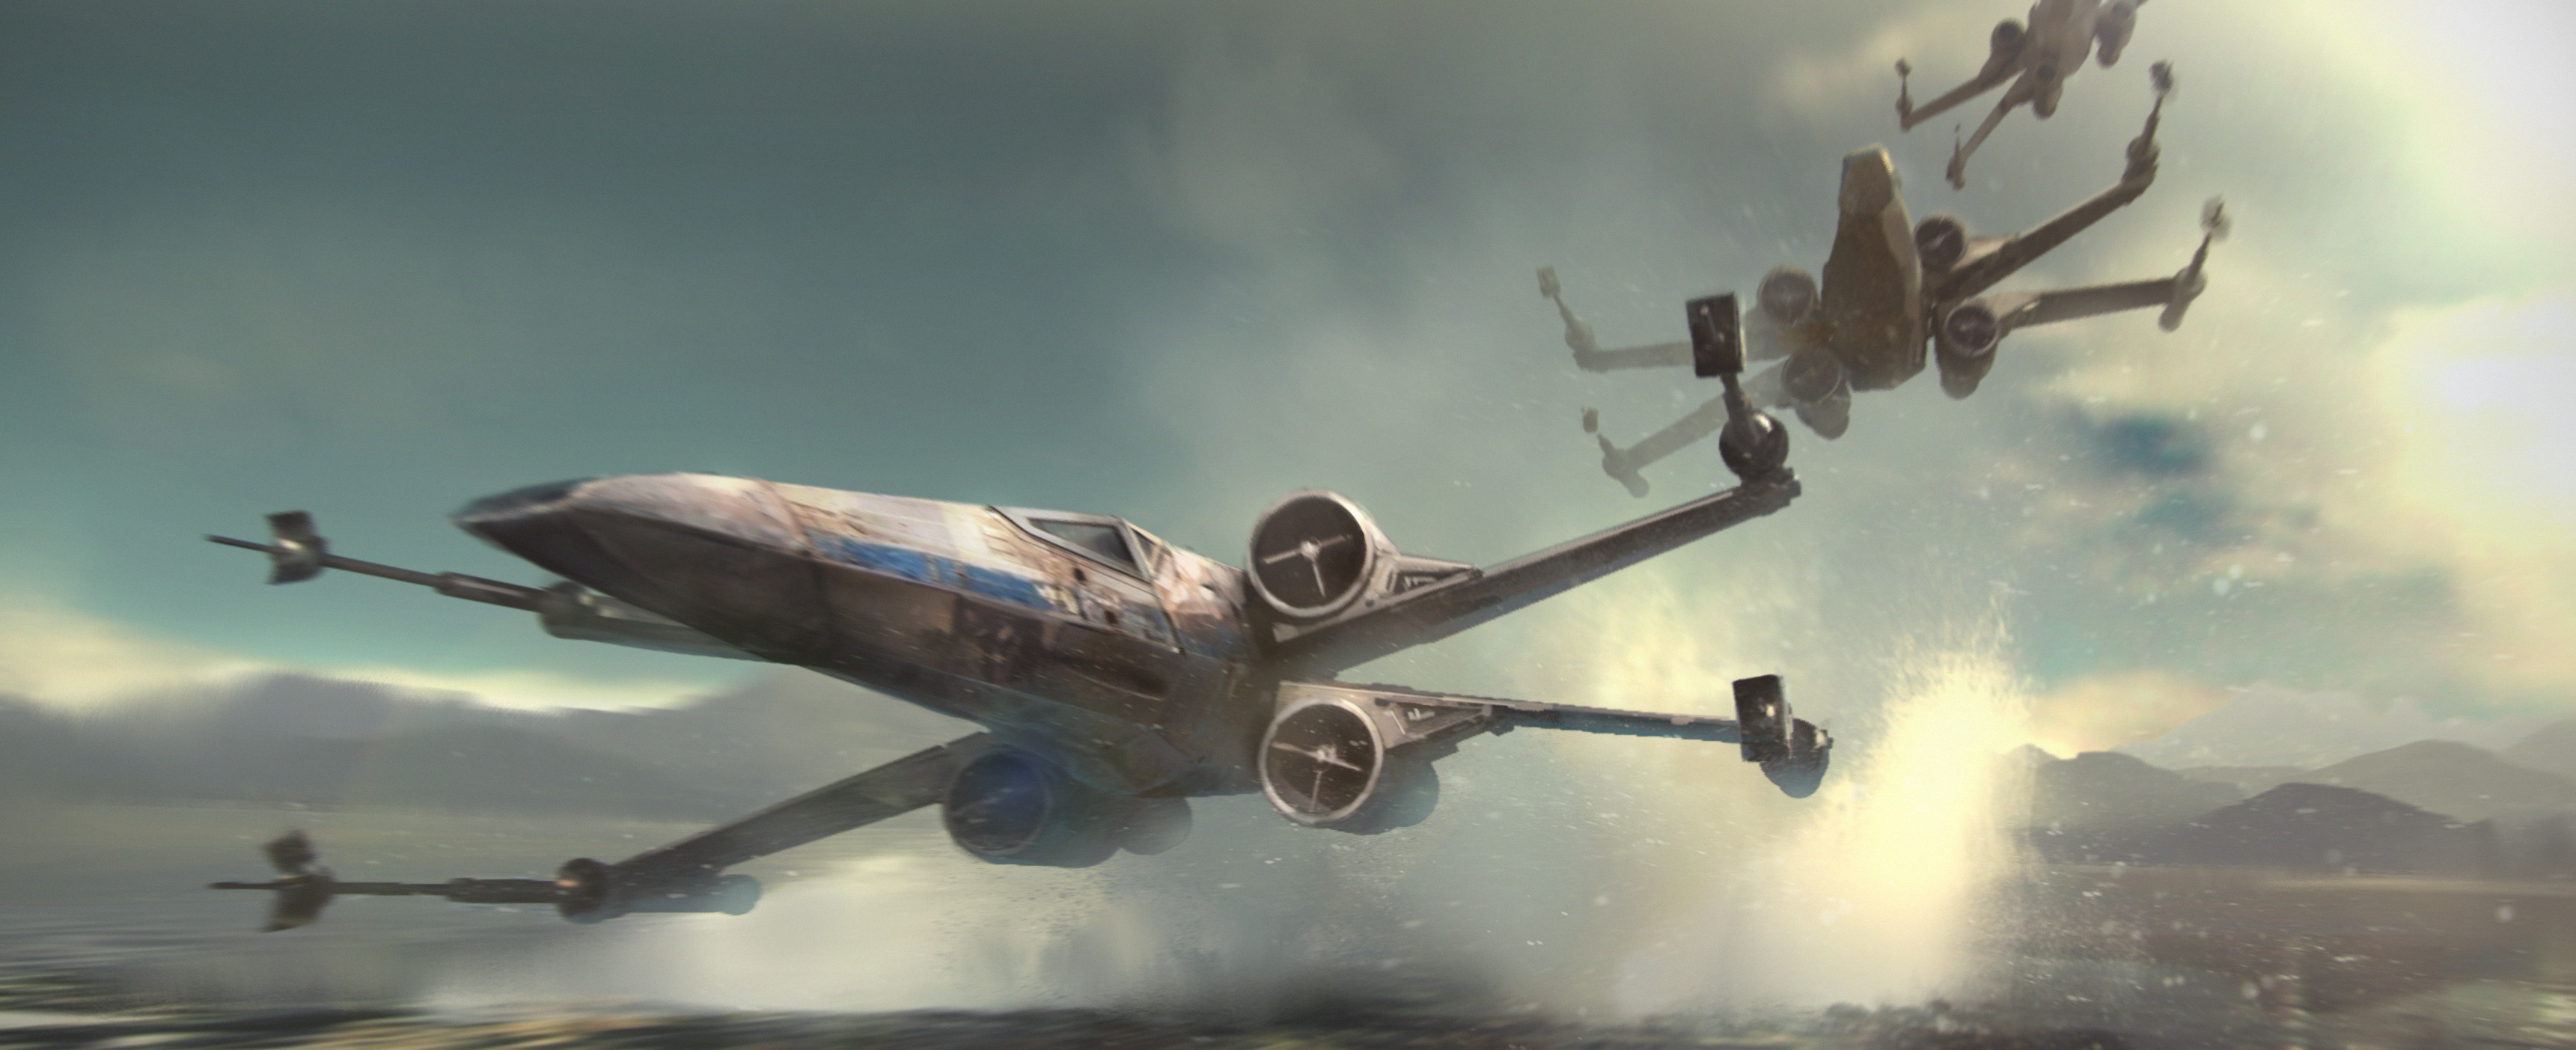 Star Wars X Wing Desktop Wallpaper